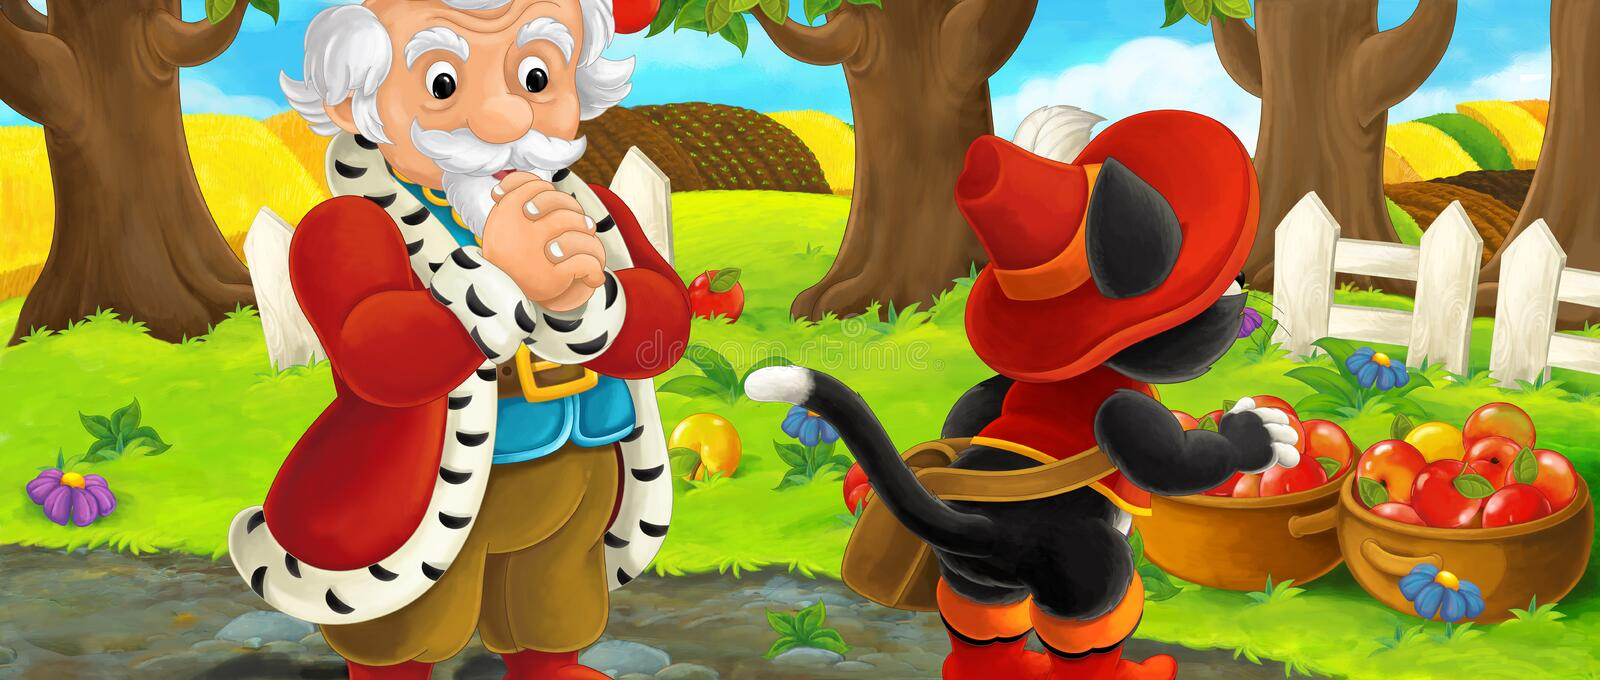 Cartoon scene with king and cat traveler visiting apple garden during beautiful day royalty free illustration